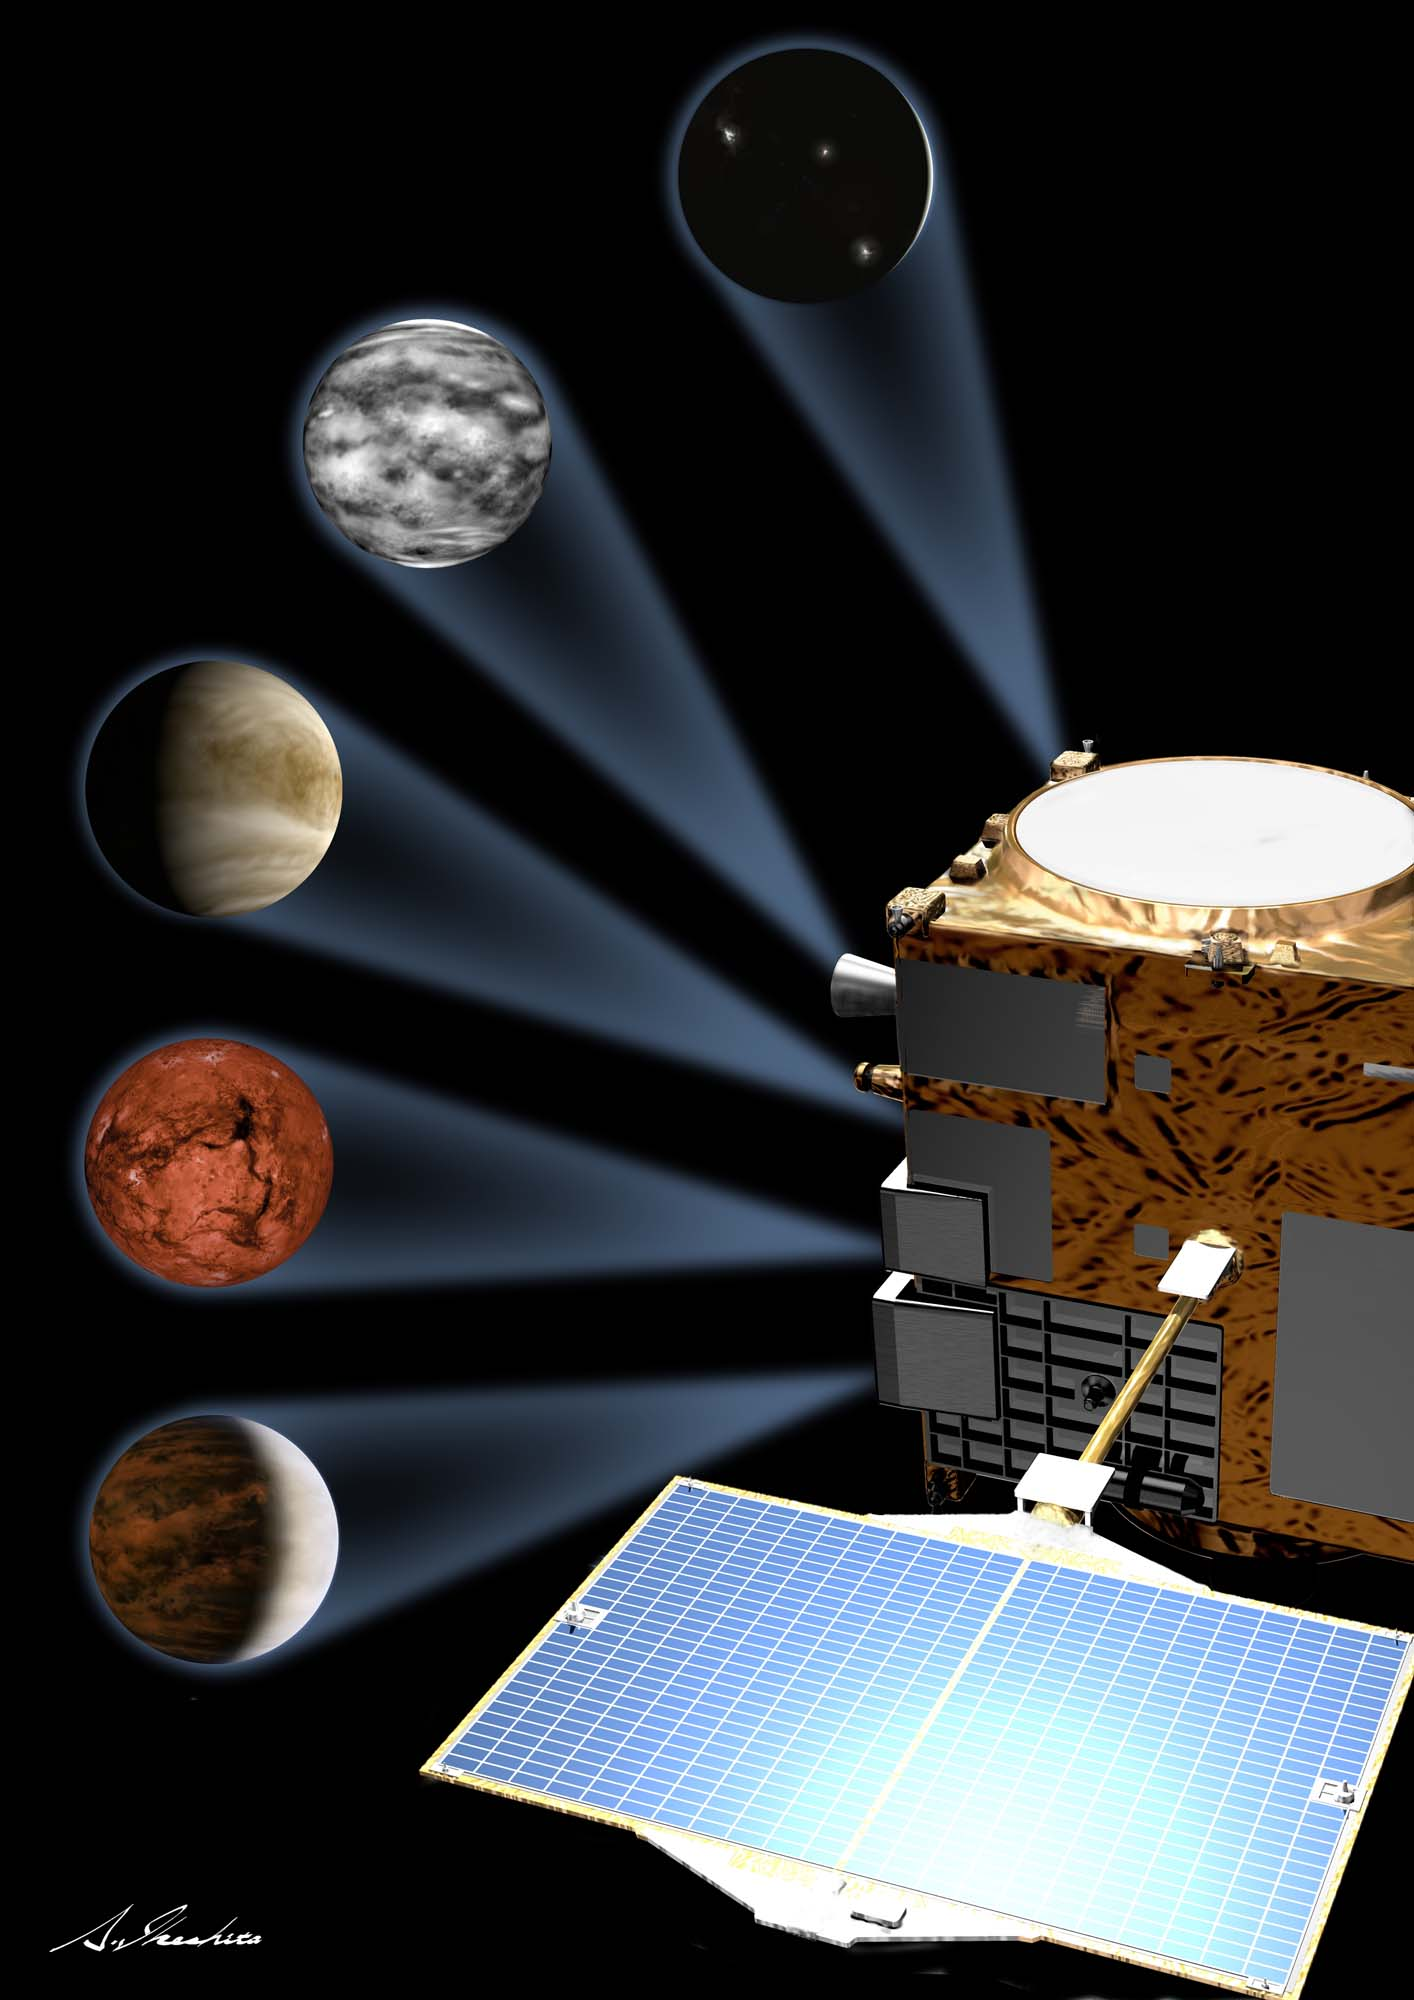 Akatsuki's five cameras will study the atmosphere of Venus. Credit: JAXA